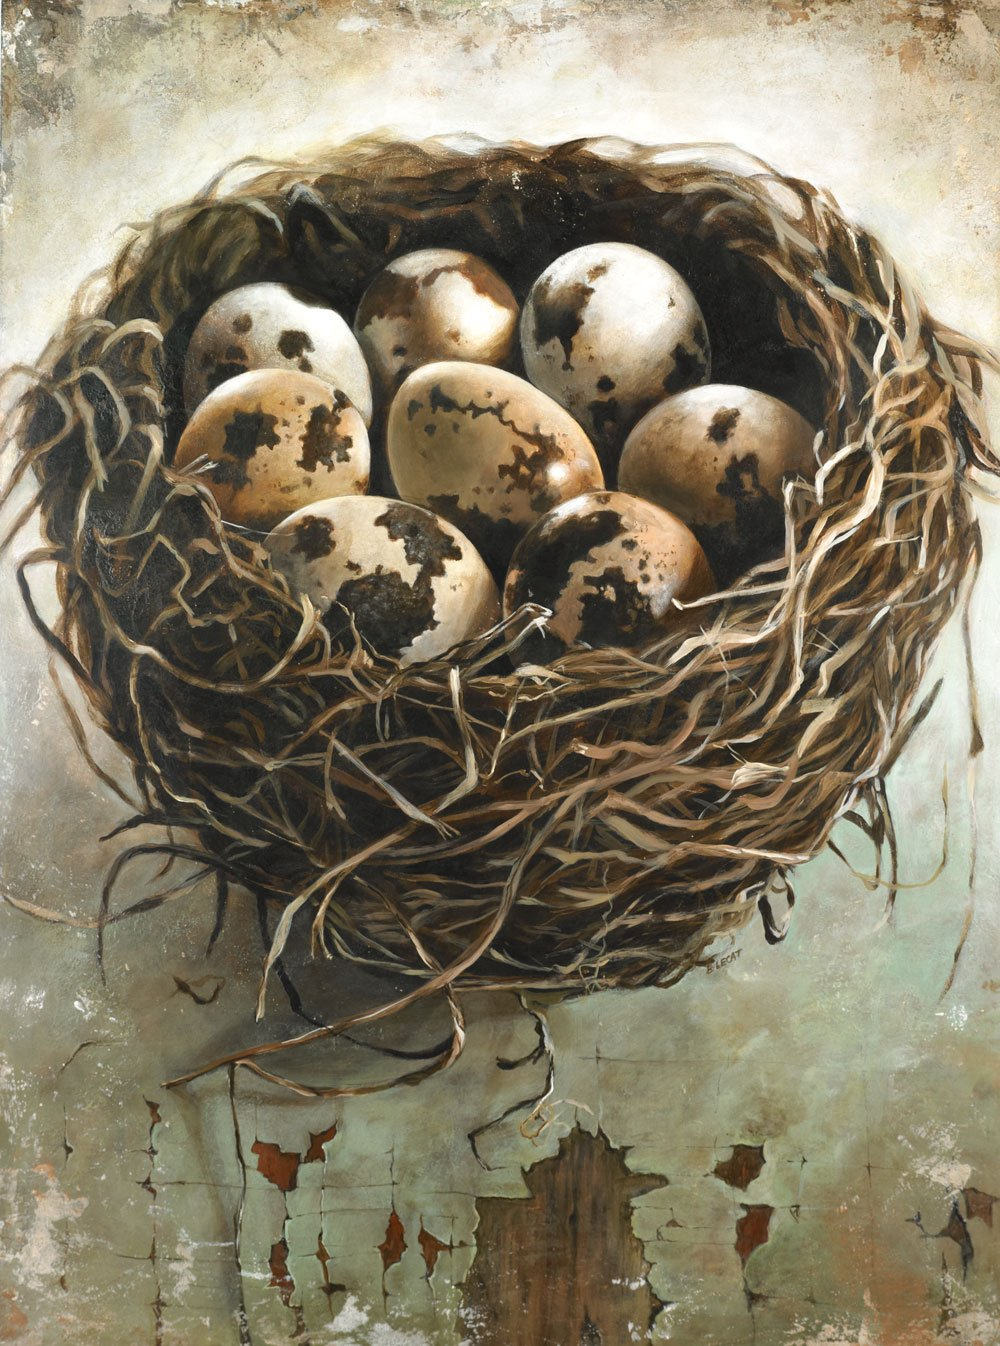 Tangled Nest painting by Bonnie Lecat